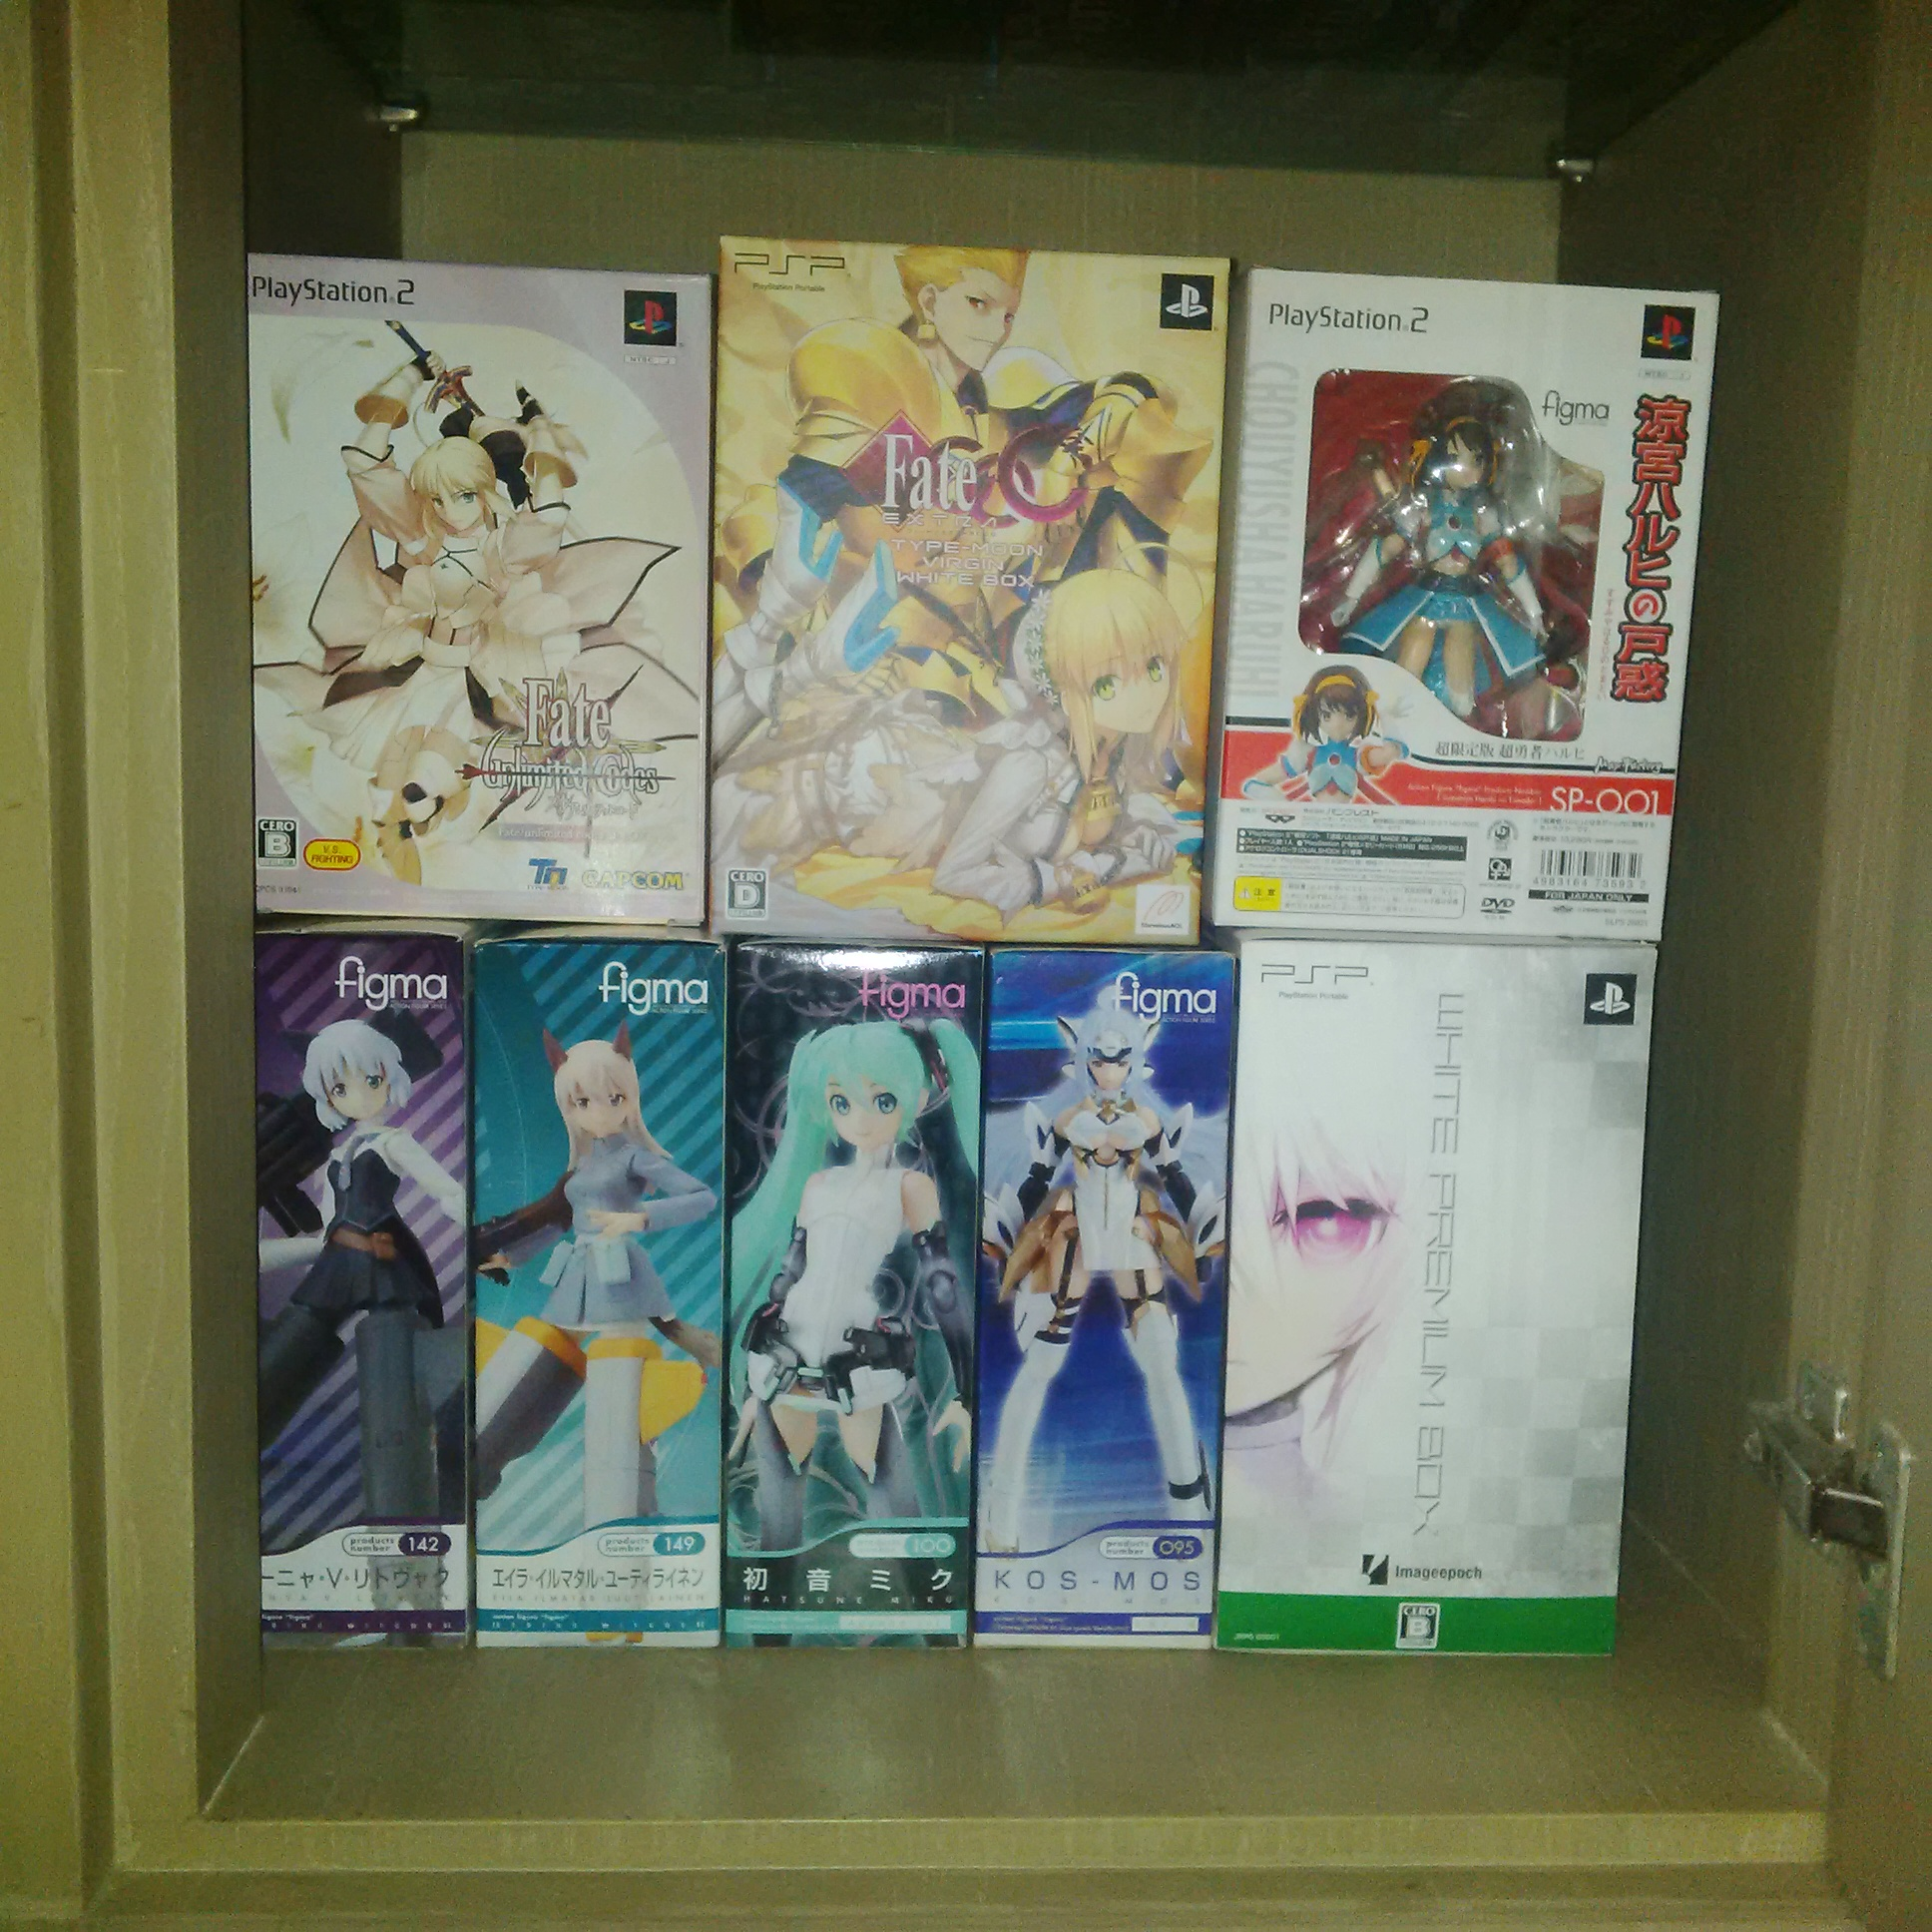 figma huke capcom max_factory type_moon saber_lily kos-mos fate/unlimited_codes xenosaga_episode_iii:_also_sprach_zarathustra asai_(apsy)_masaki white_★_rock_shooter nasu_kinoko takeuchi_takashi fate/extra_ccc saber_bride psp_game wada_rco ps2_game imageepoch black_★_rock_shooter_-_the_game tange_sakura marvelous_aql cavia bandai_namco_games_inc.